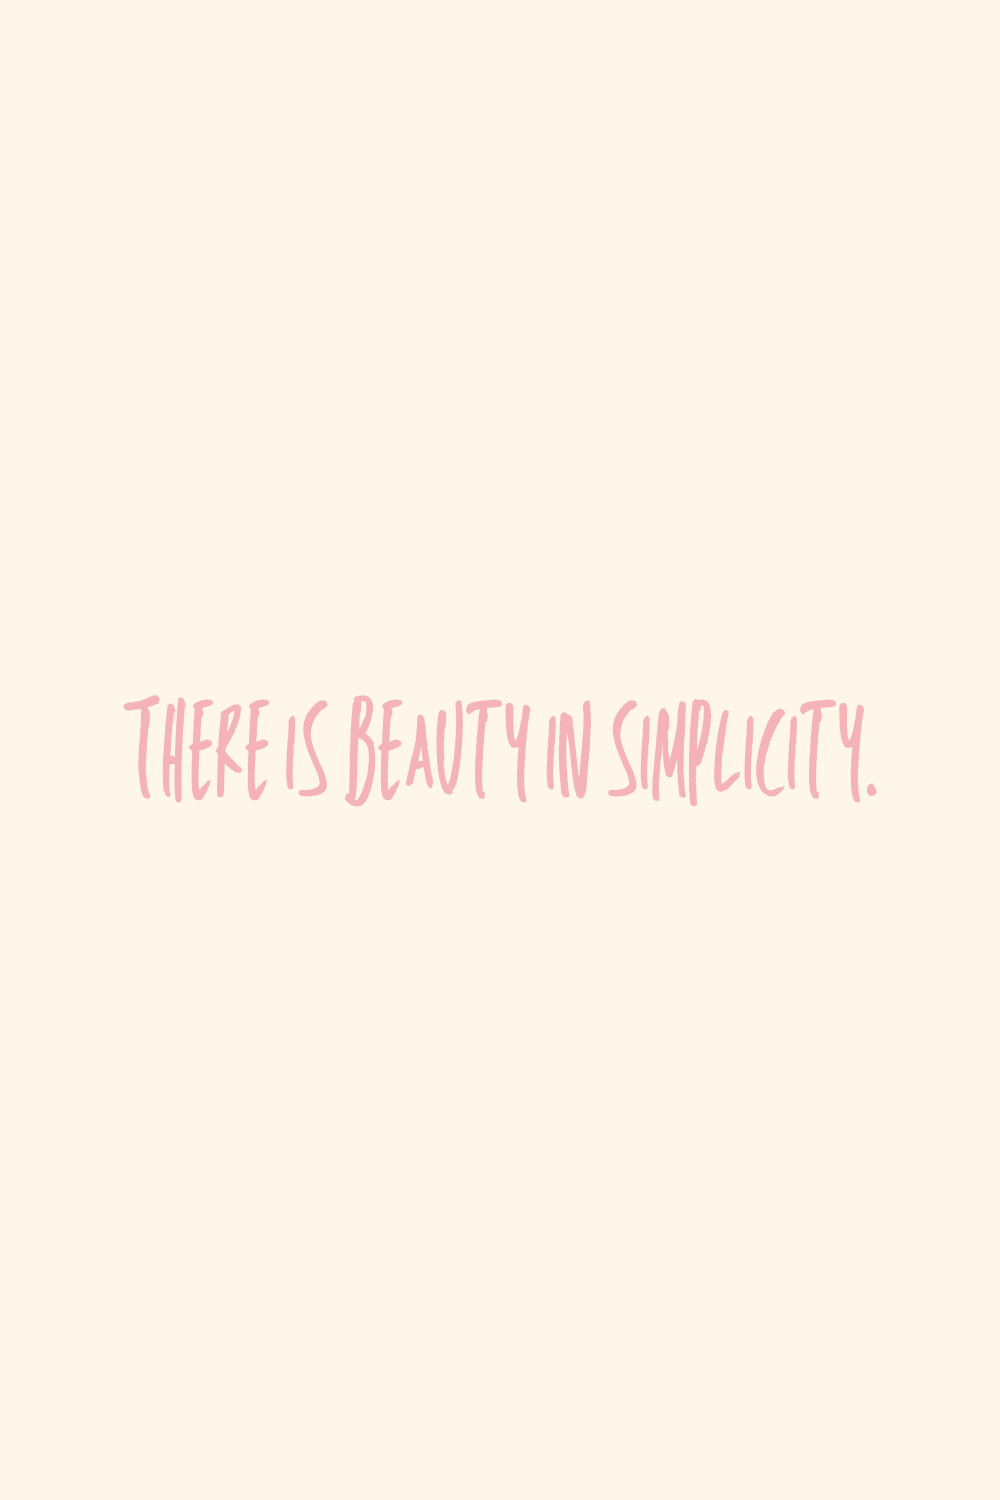 Quotes about simplicity & beauty